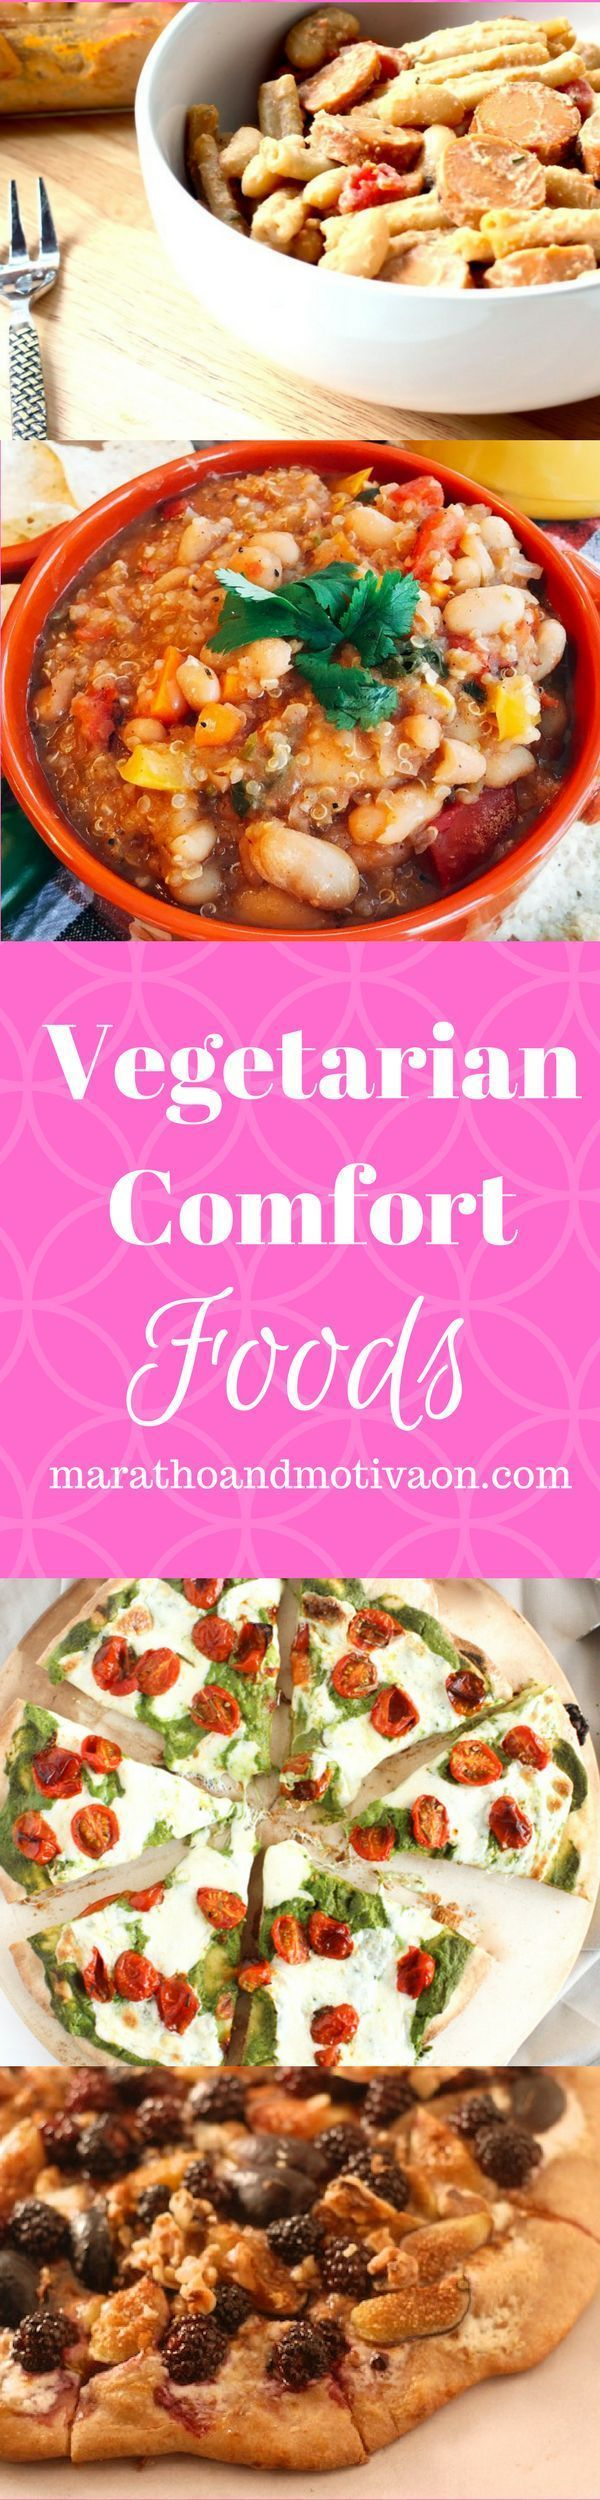 Vegetarian comfort food vegetarian comfort food chili pasta and vegetarian comfort food healthy food recipeschili forumfinder Image collections